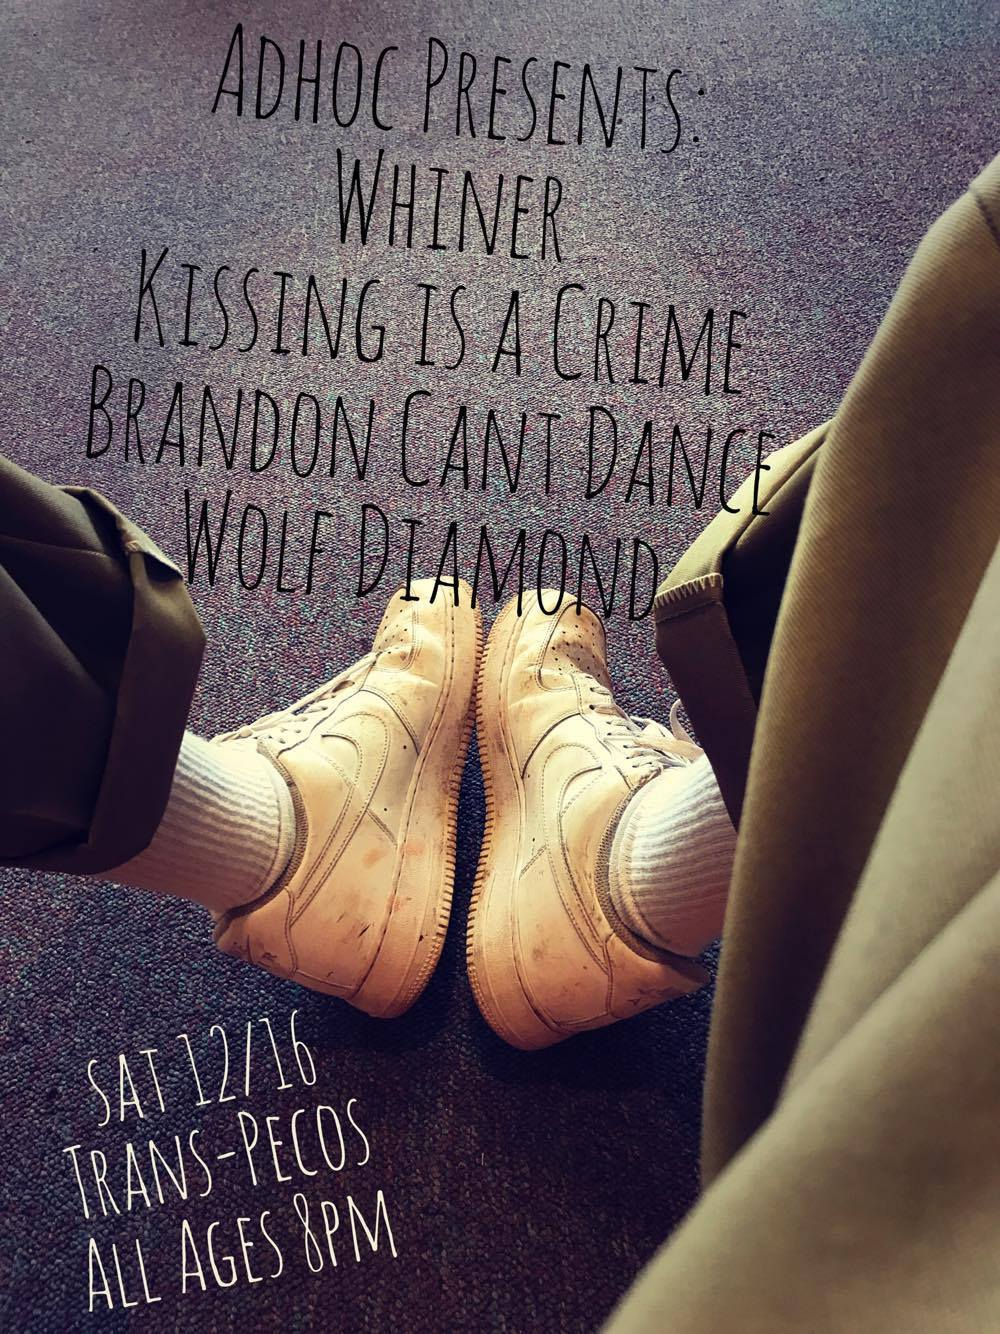 Whiner   Kissing Is A Crime   Brandon Can't Dance   Wolf Diamond